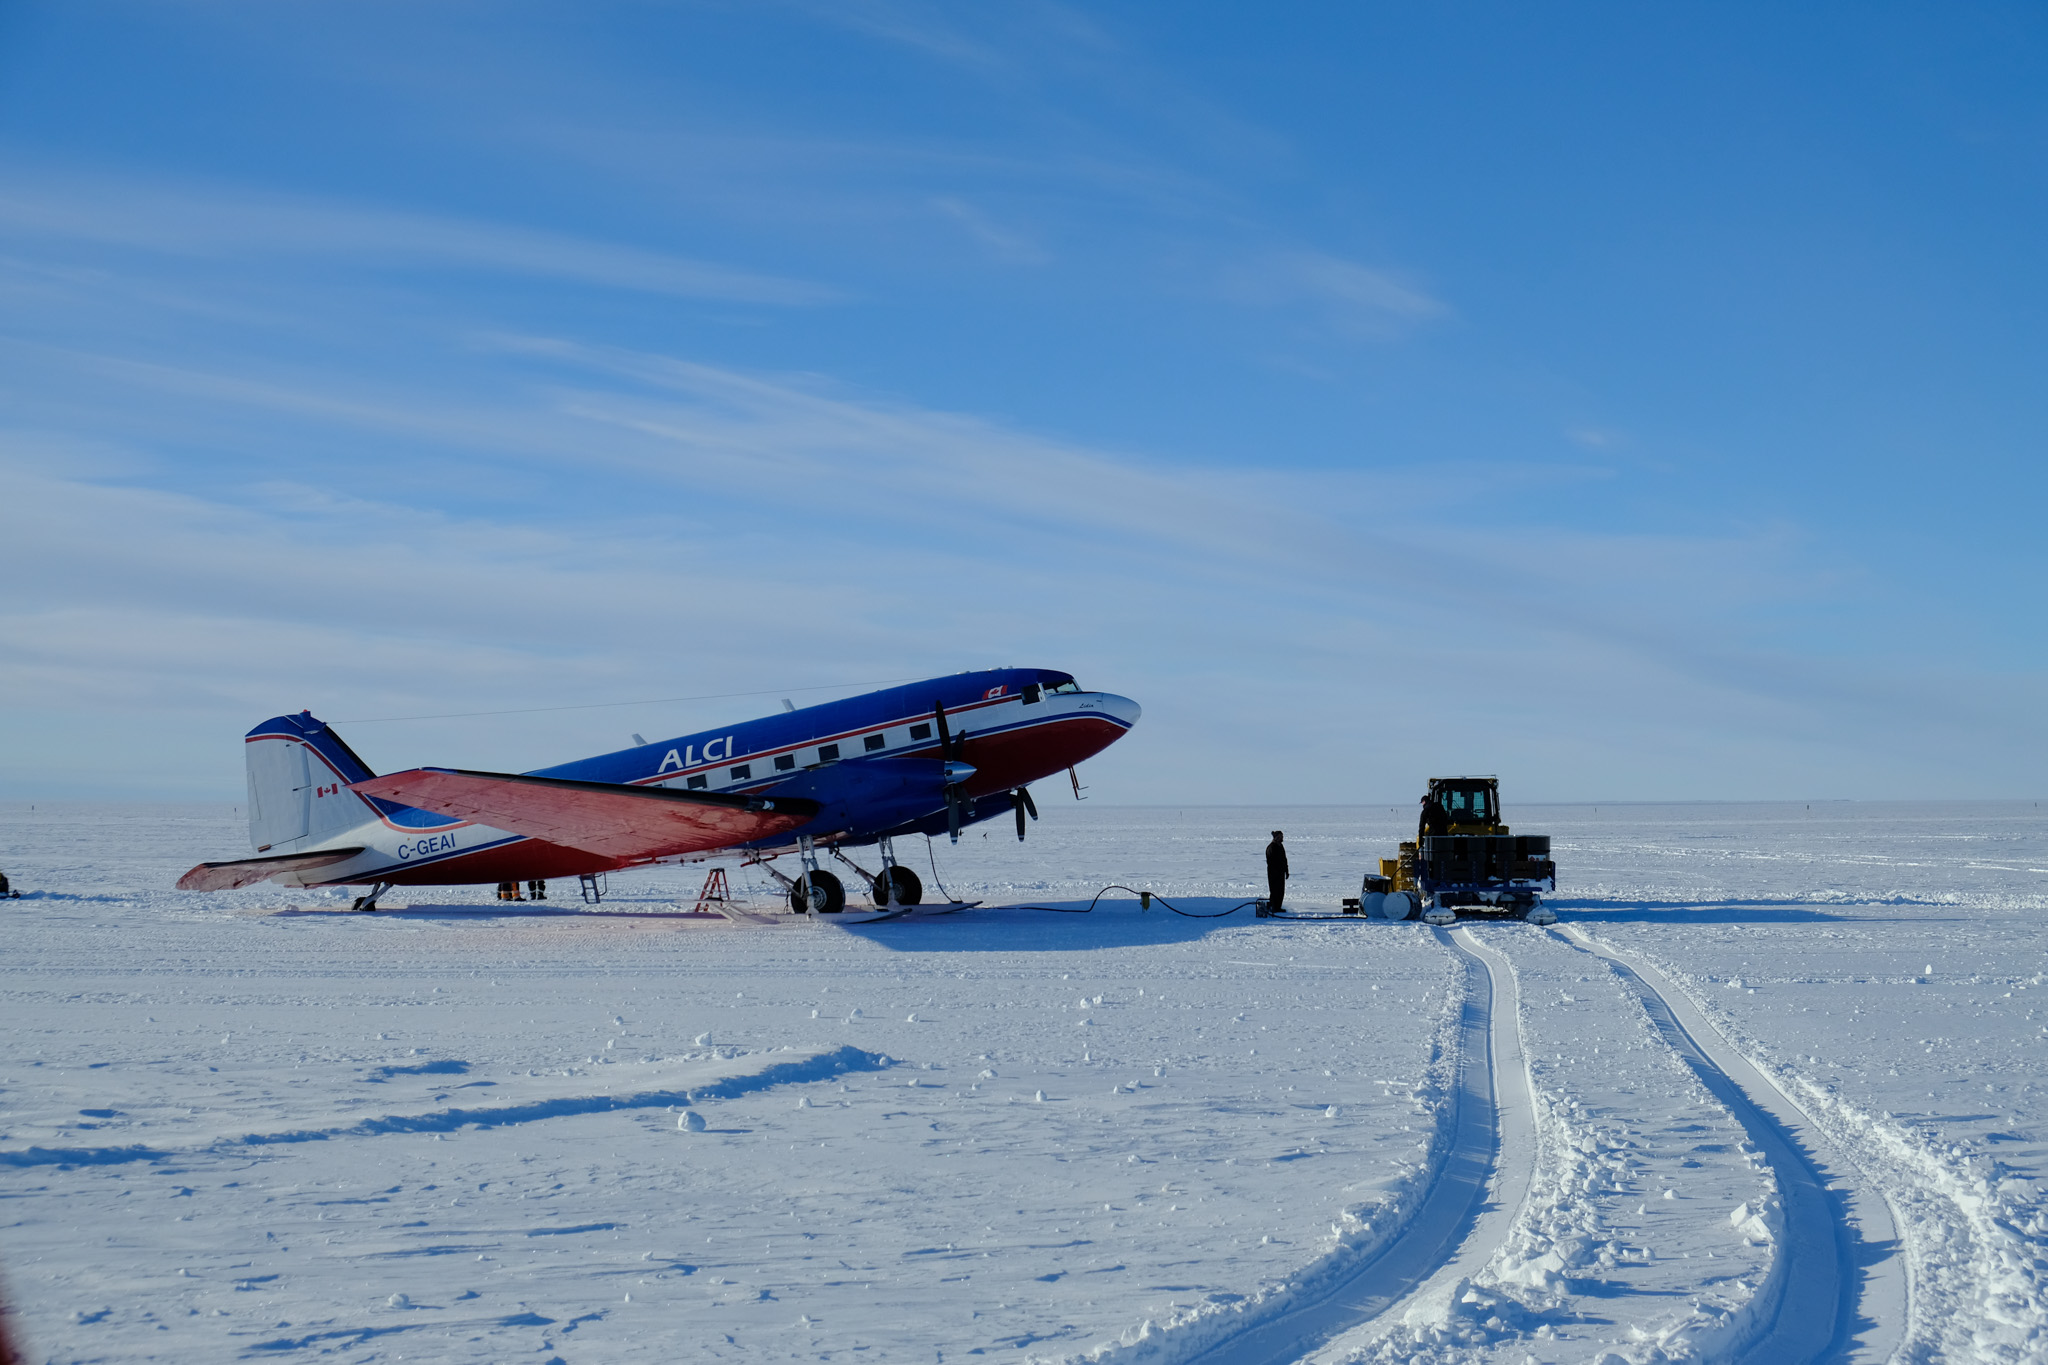 The Douglas DC-3 aircraft used to transport people to the Antarctic.